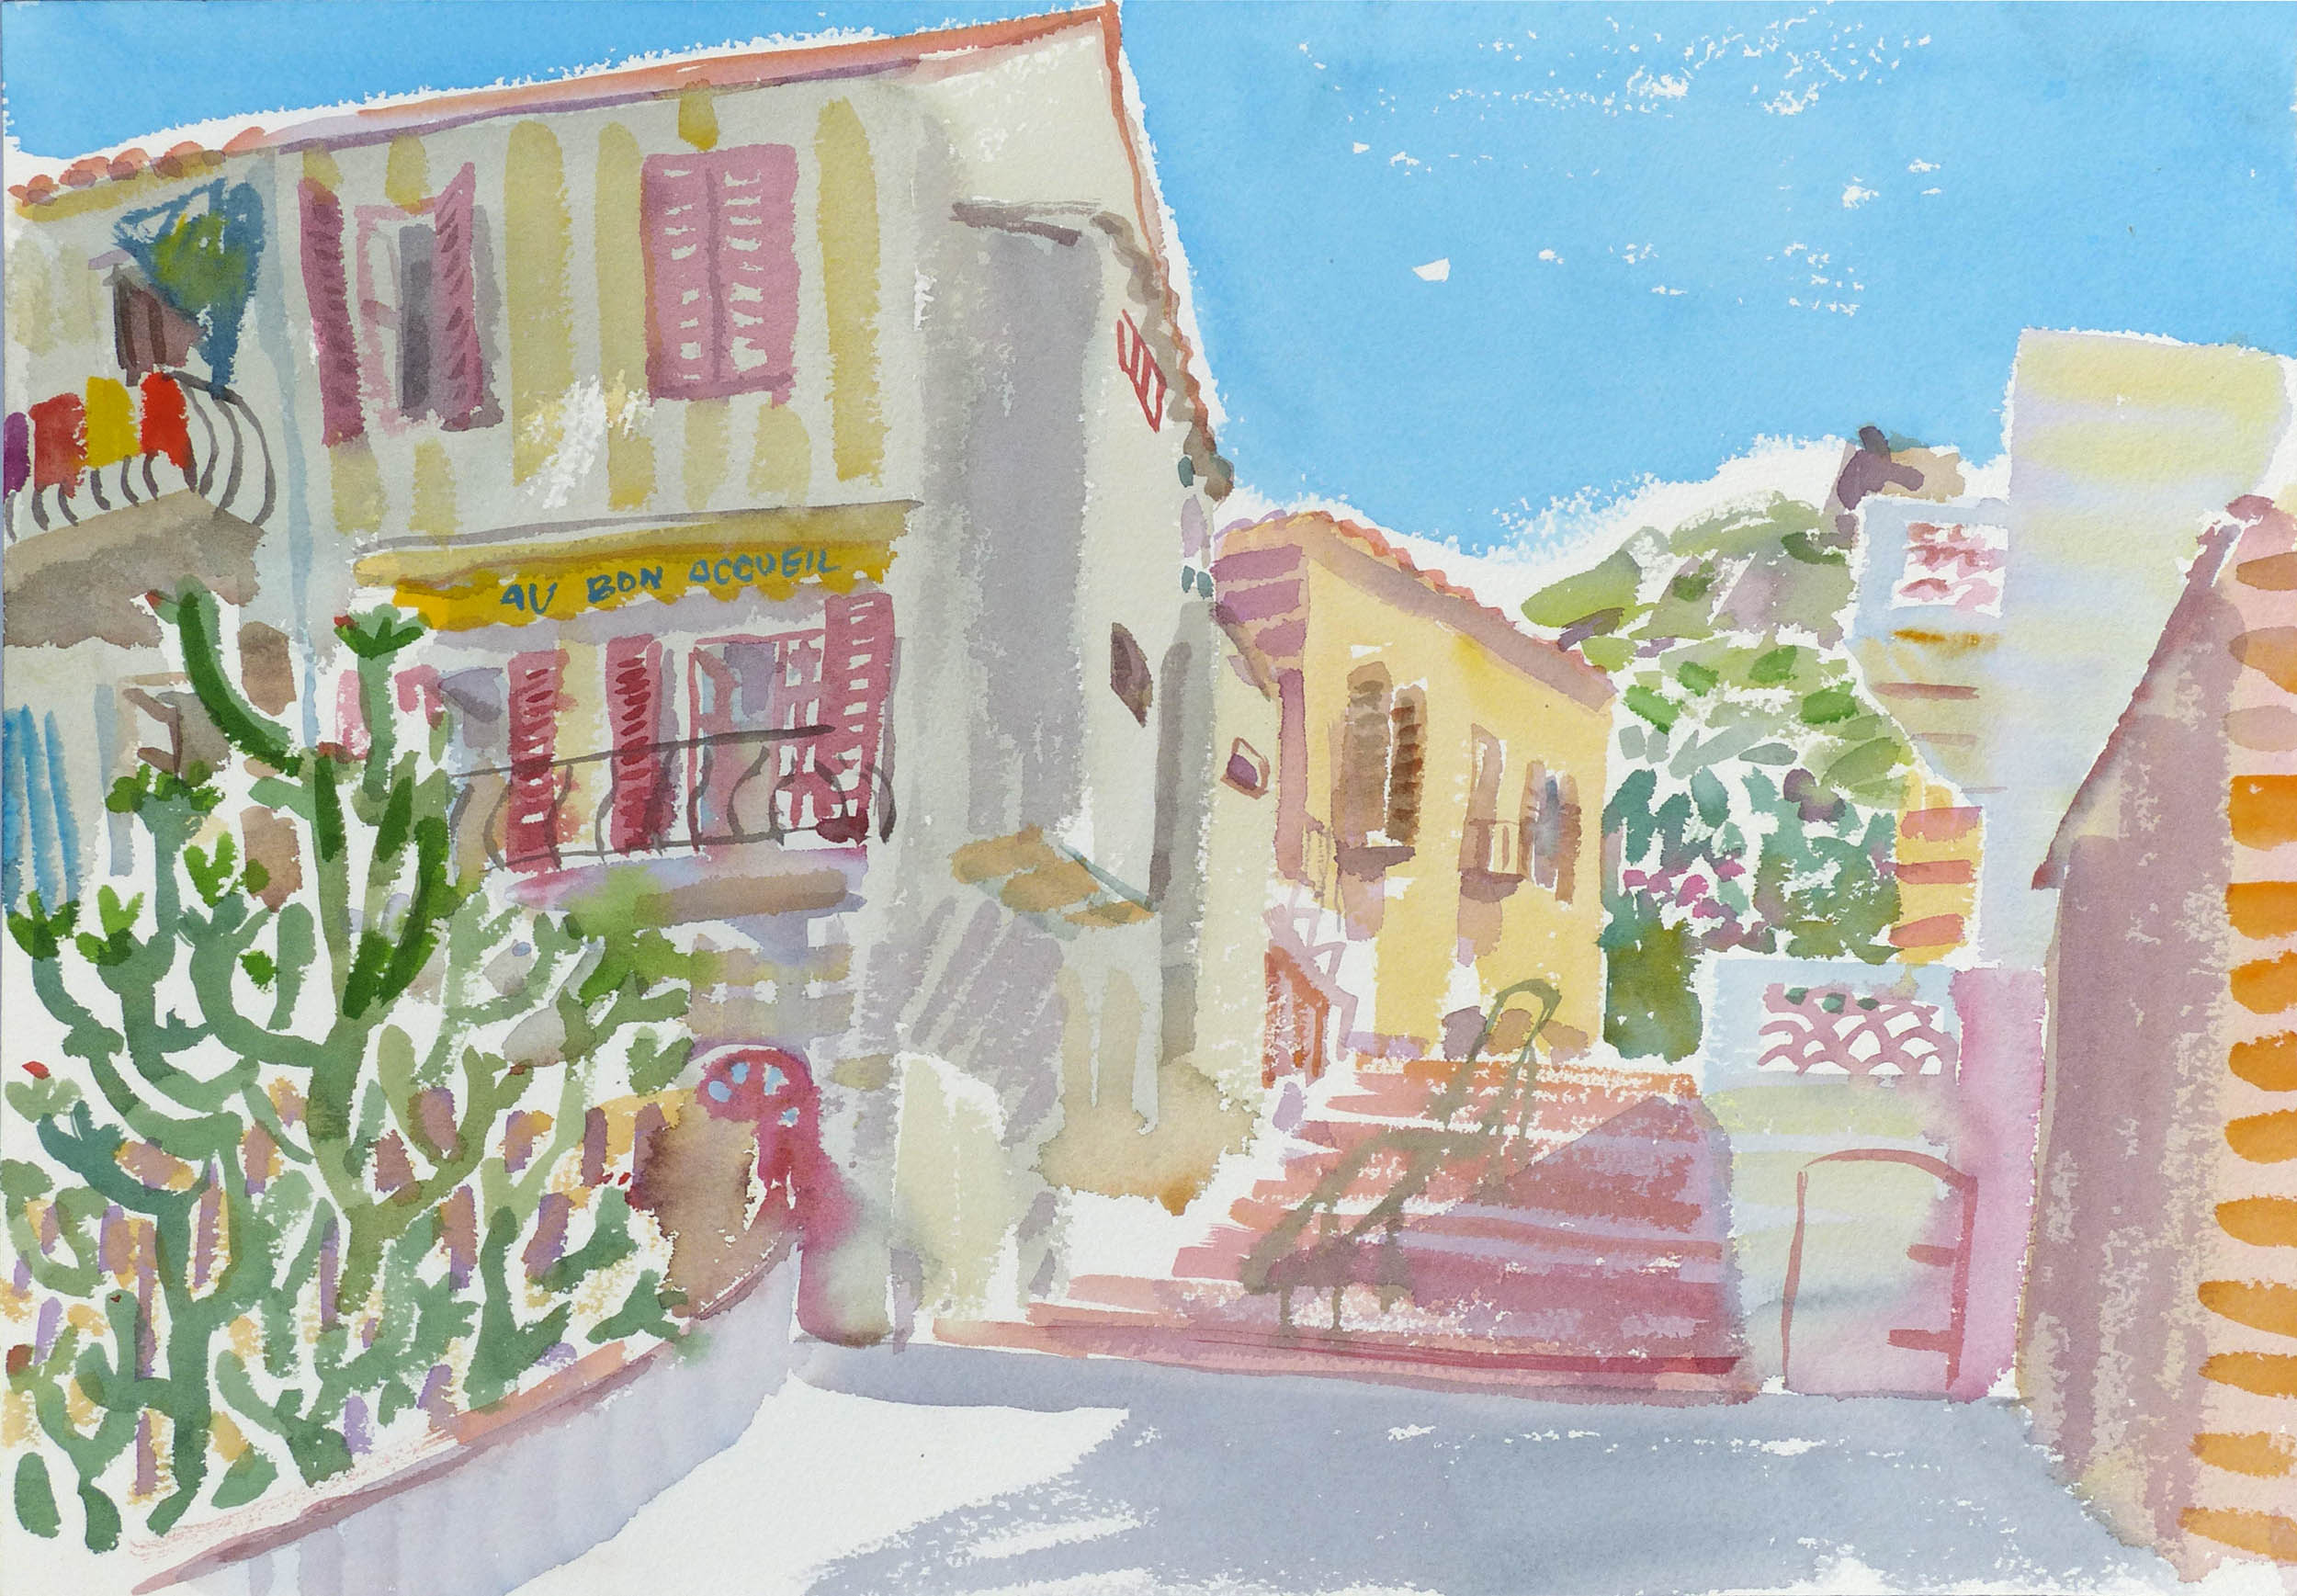 cargese_2015_5